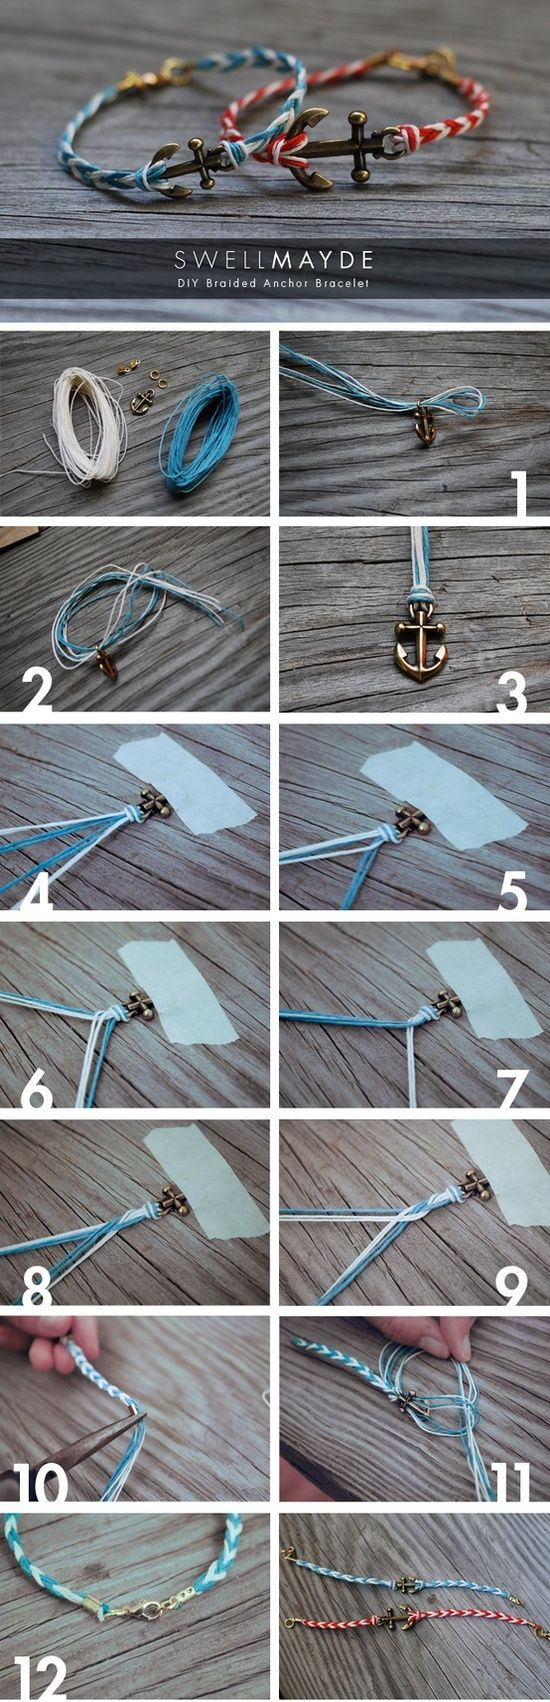 Anchor DIY bracelet